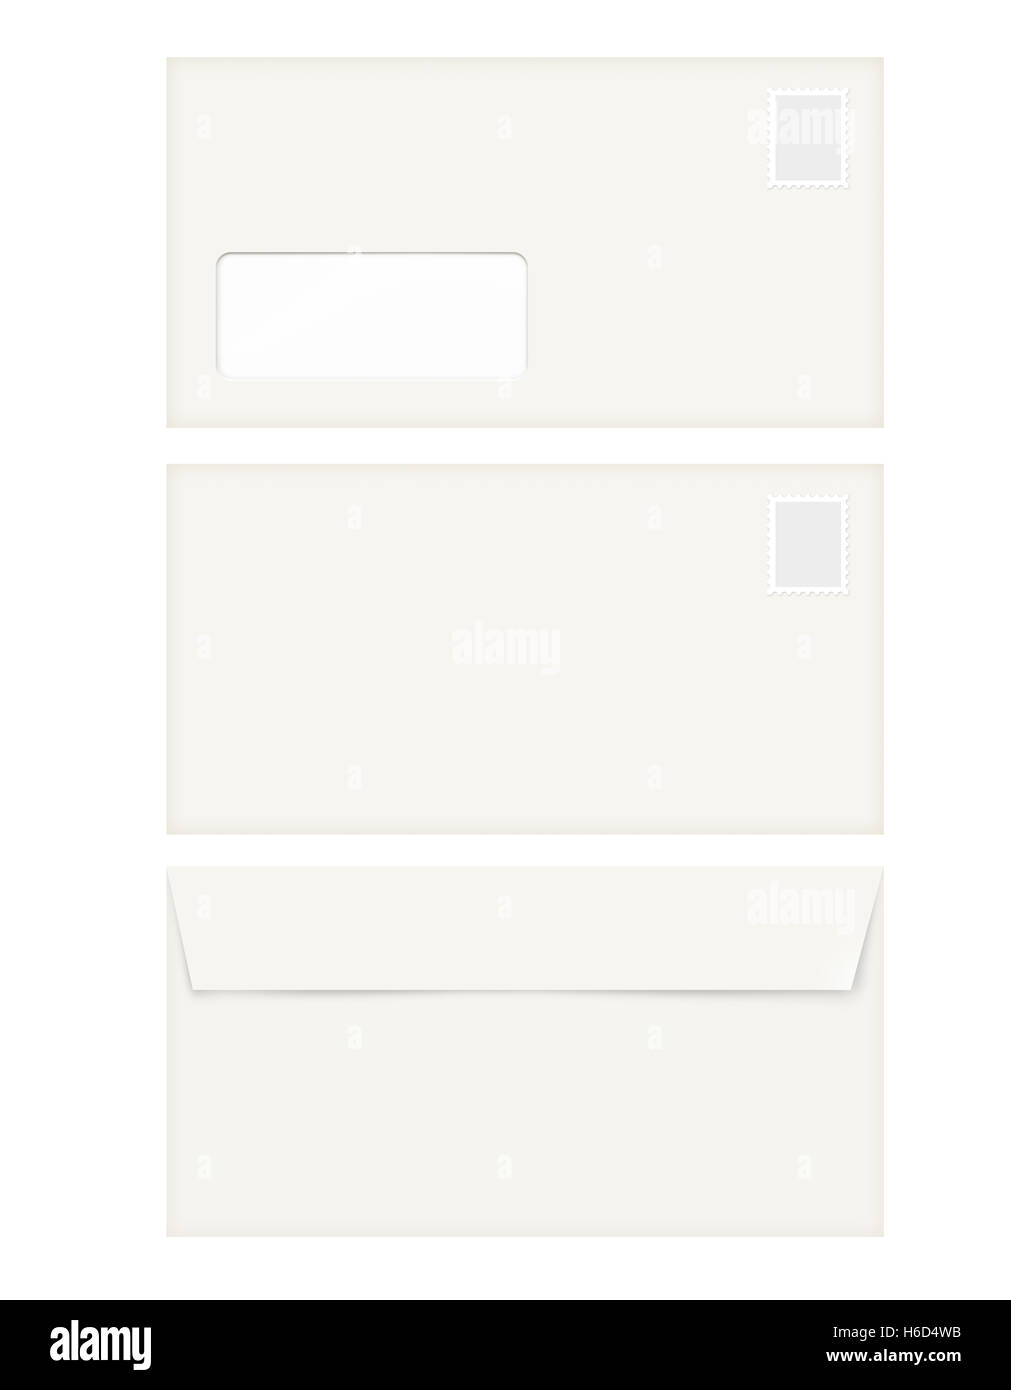 isolated empty window envelope template with the stamp stock photo